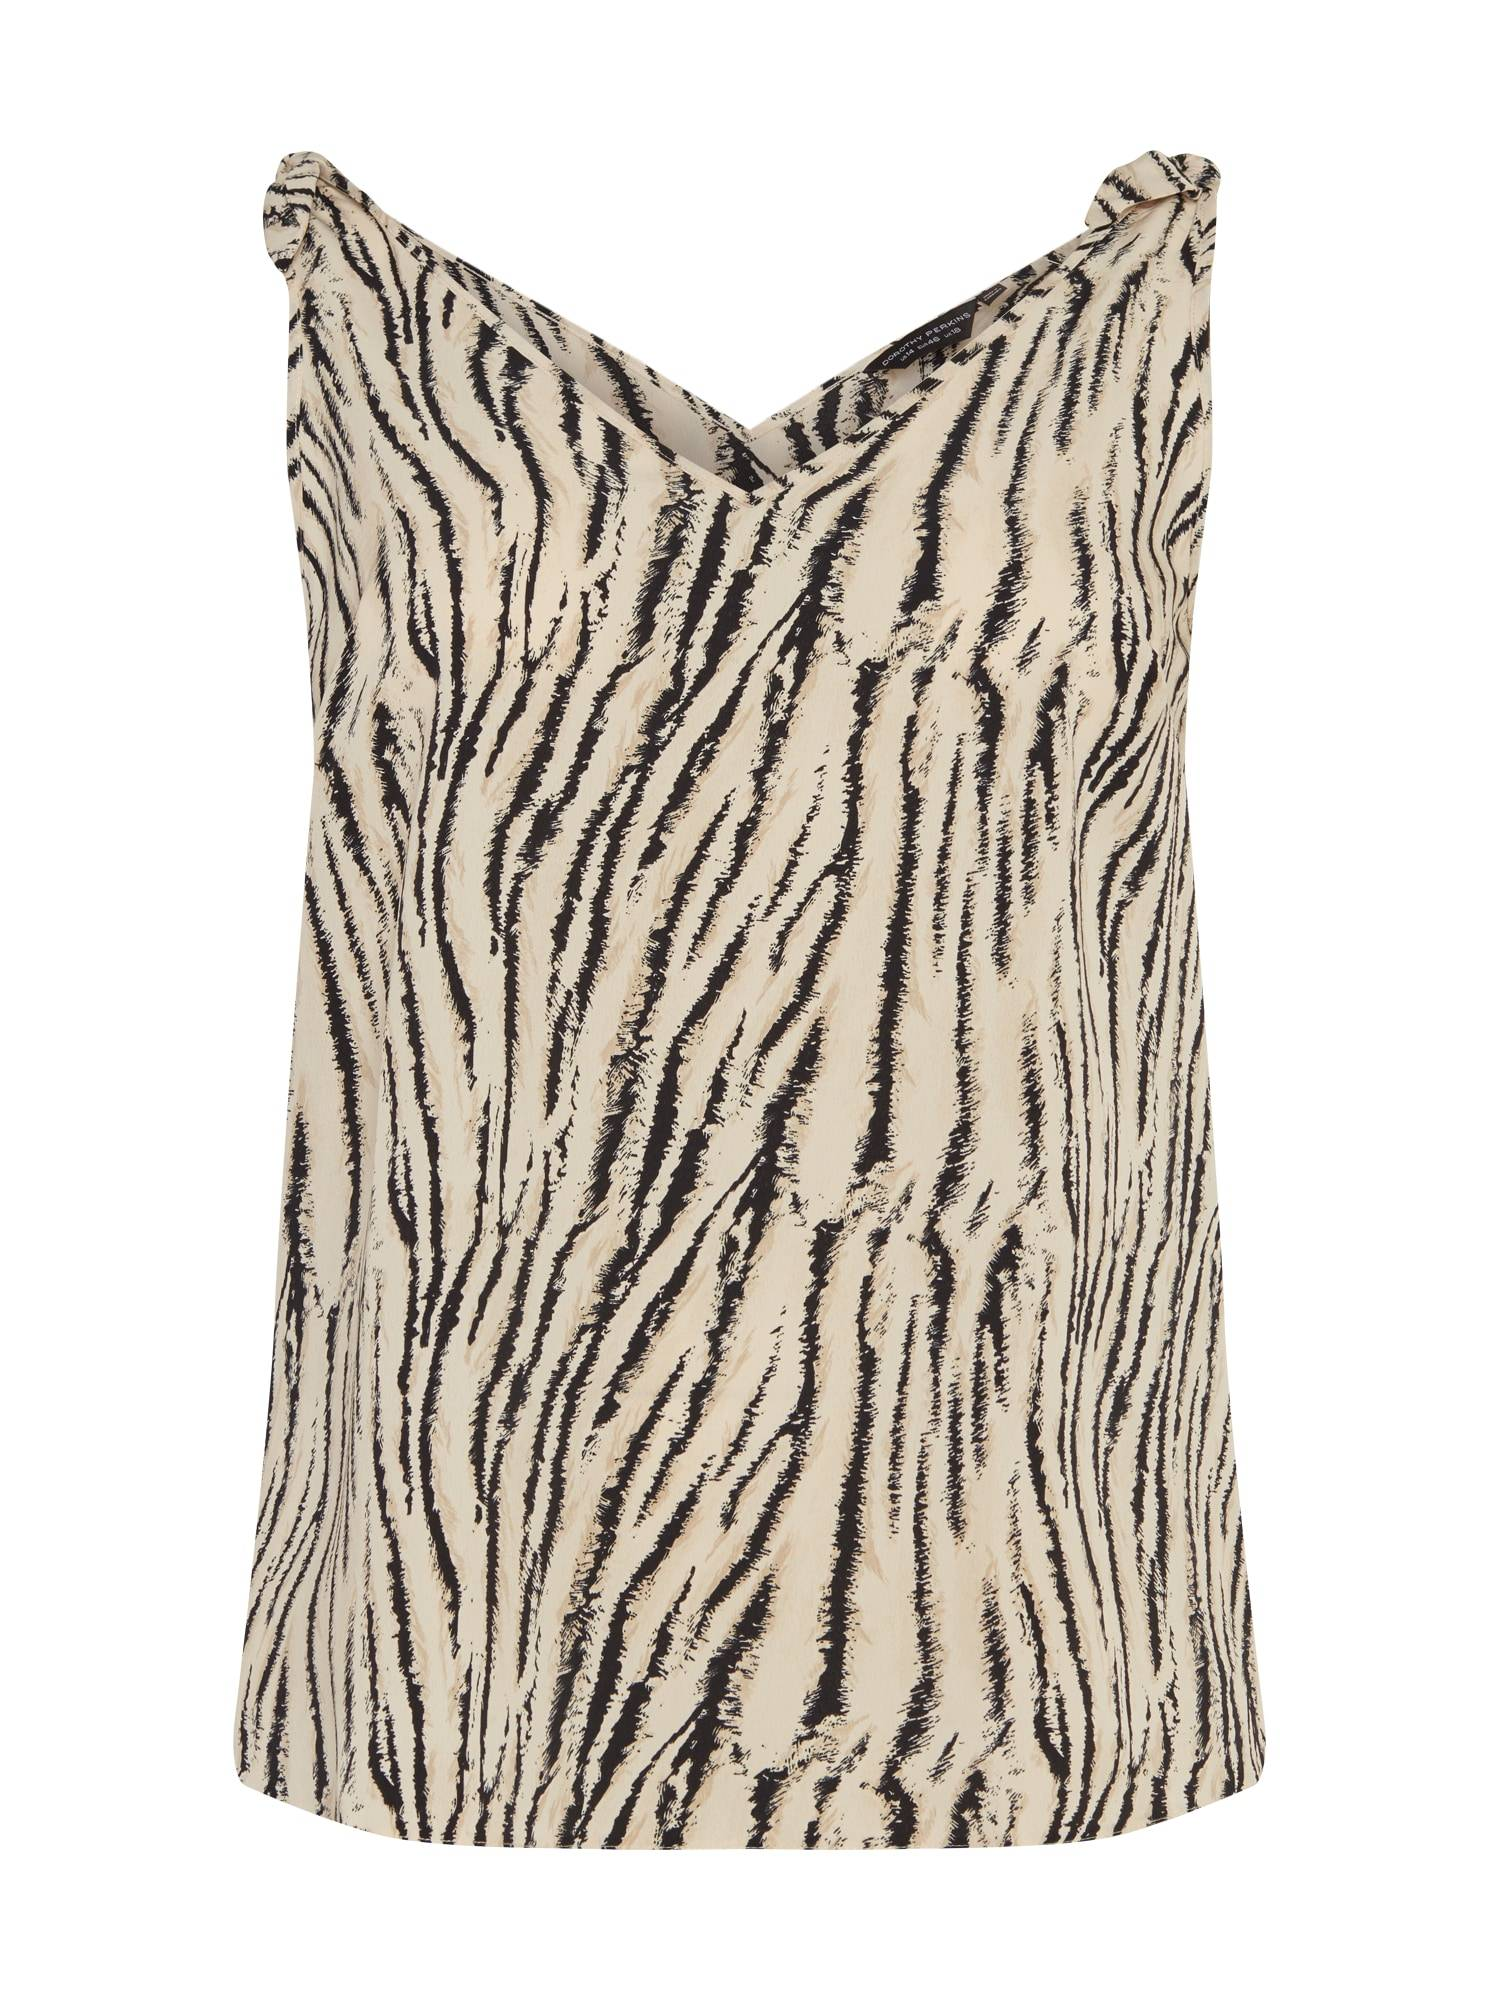 Dorothy Perkins Curve Haut  - Beige - Taille: 20 - female